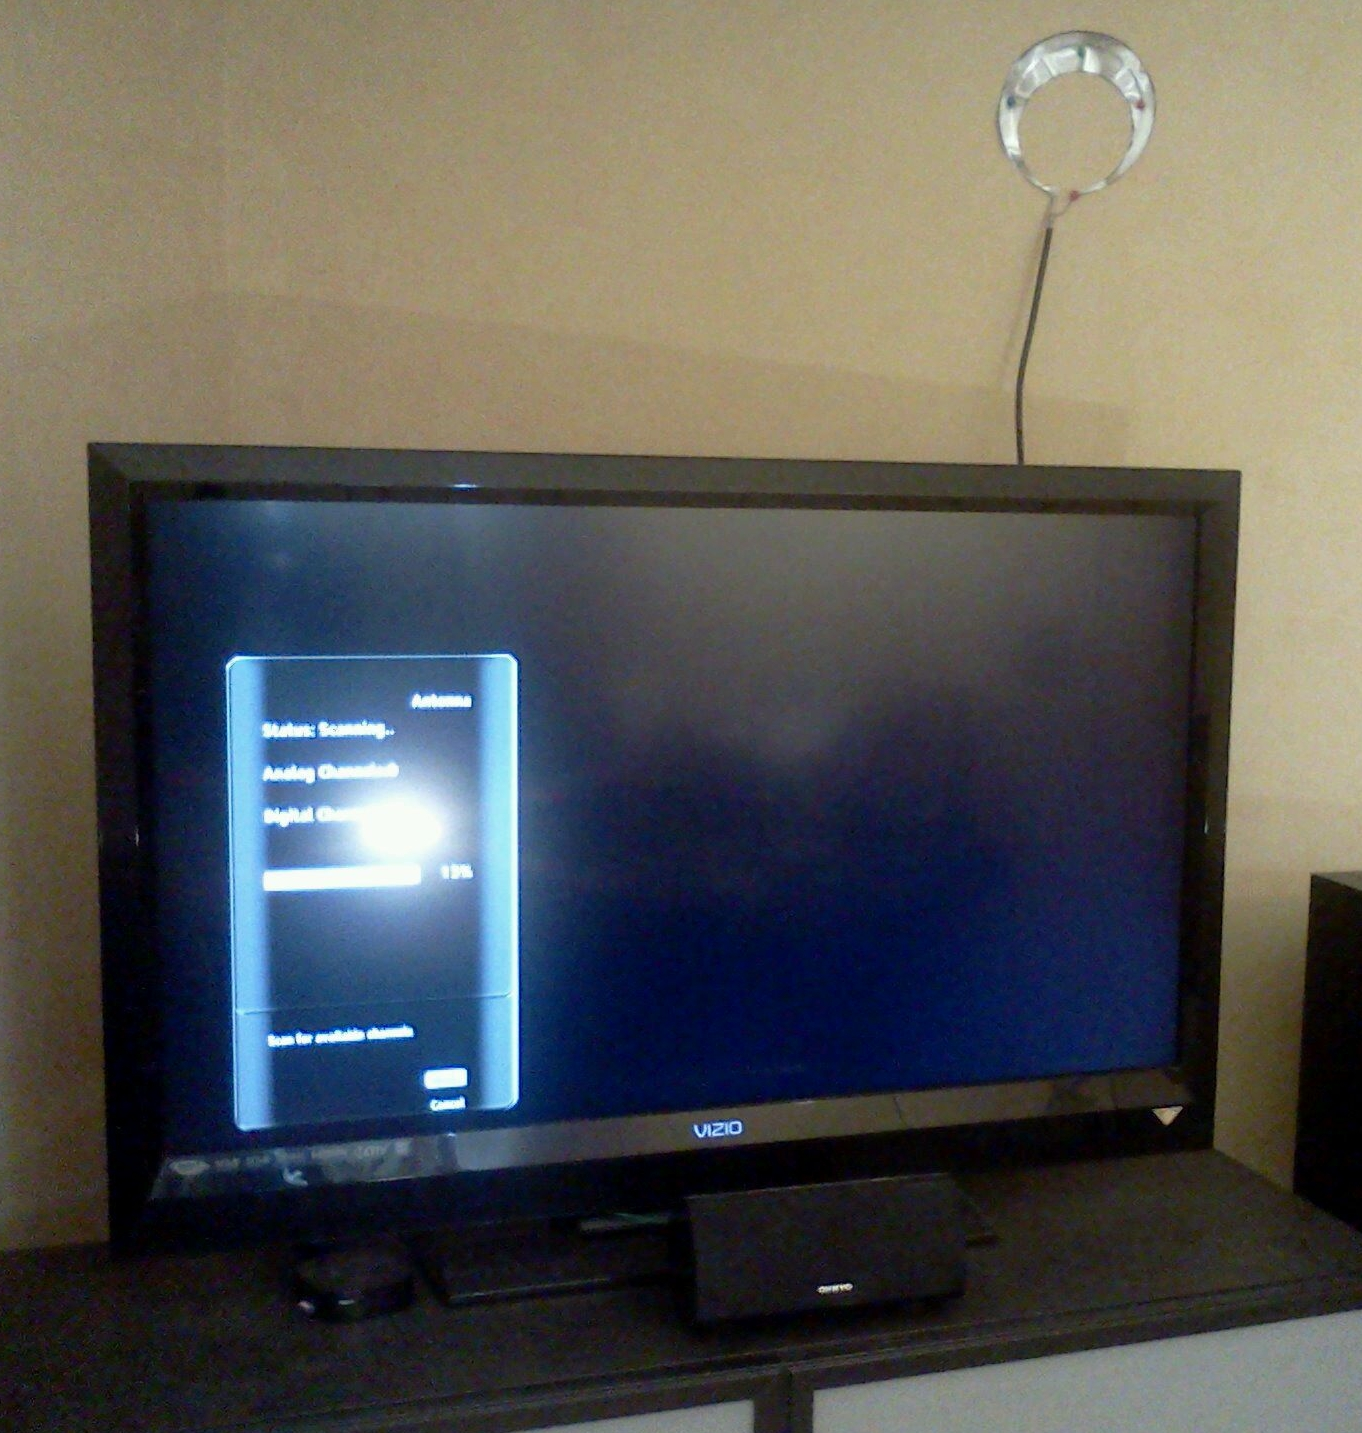 Pie-tenna, The simplest HDTV antenna possible, possibly.